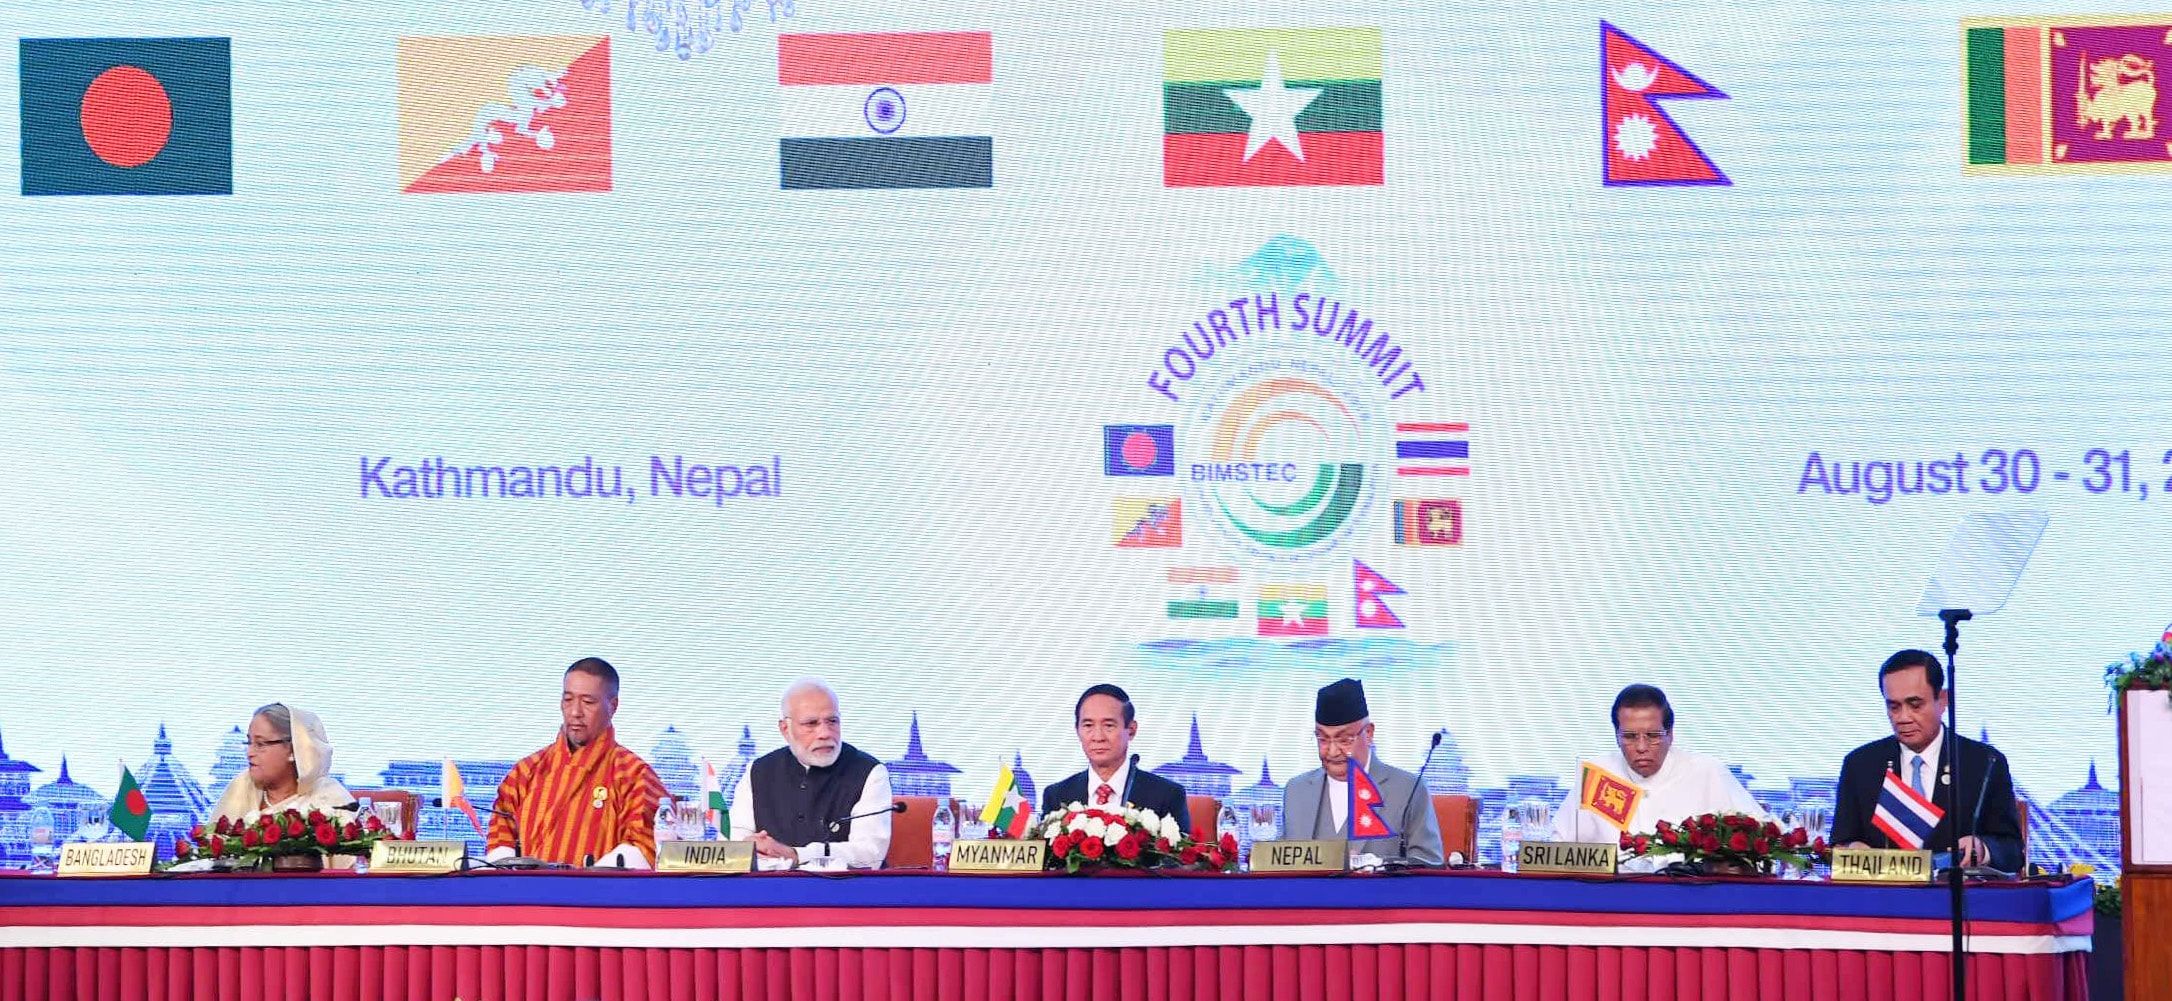 4th Bimstec Summit 2018 All Leader